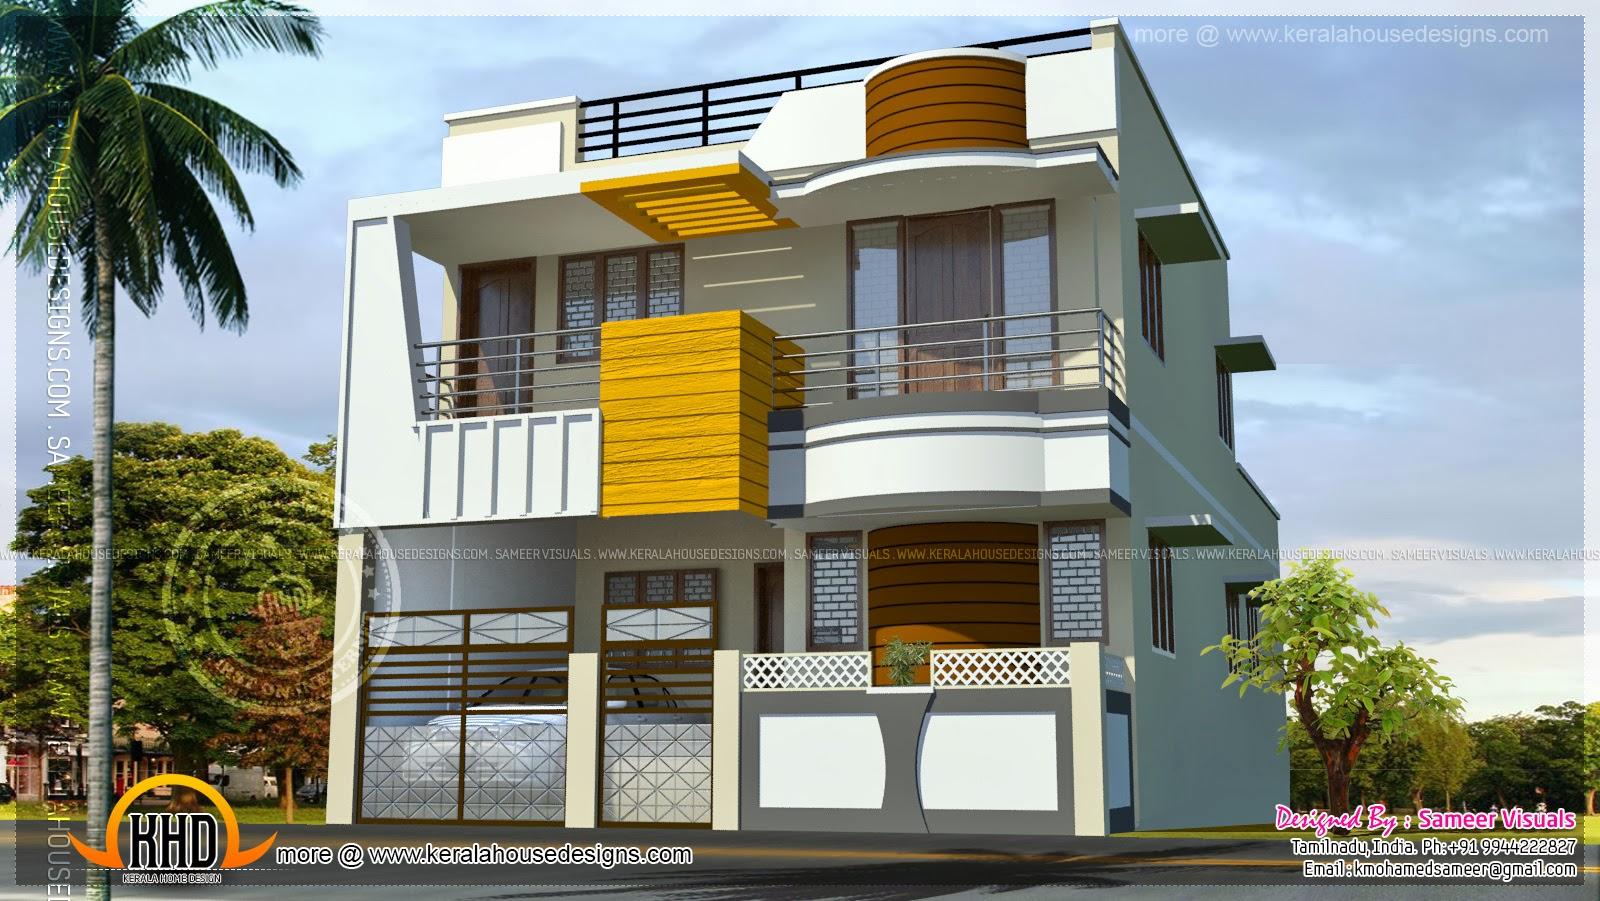 Double storied modern south Indian home - Kerala home design and floor ...